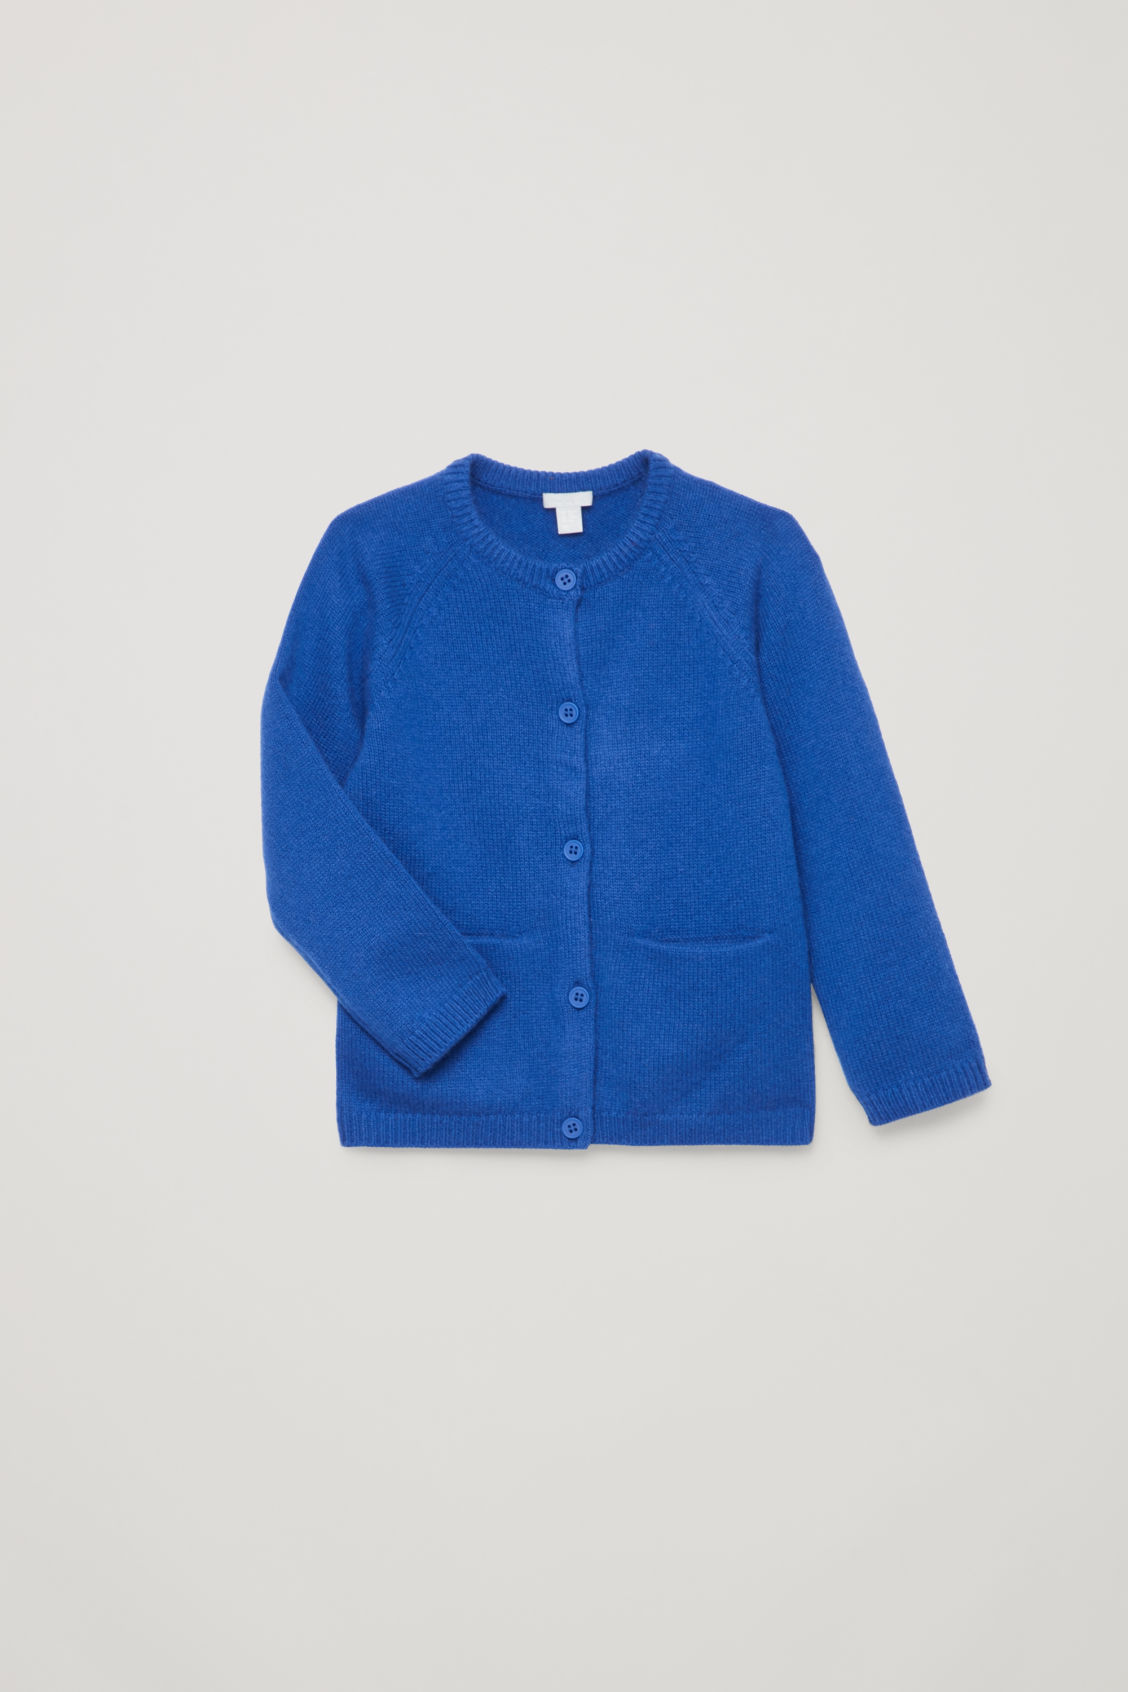 Detailed image of Cos cashmere cardigan in blue